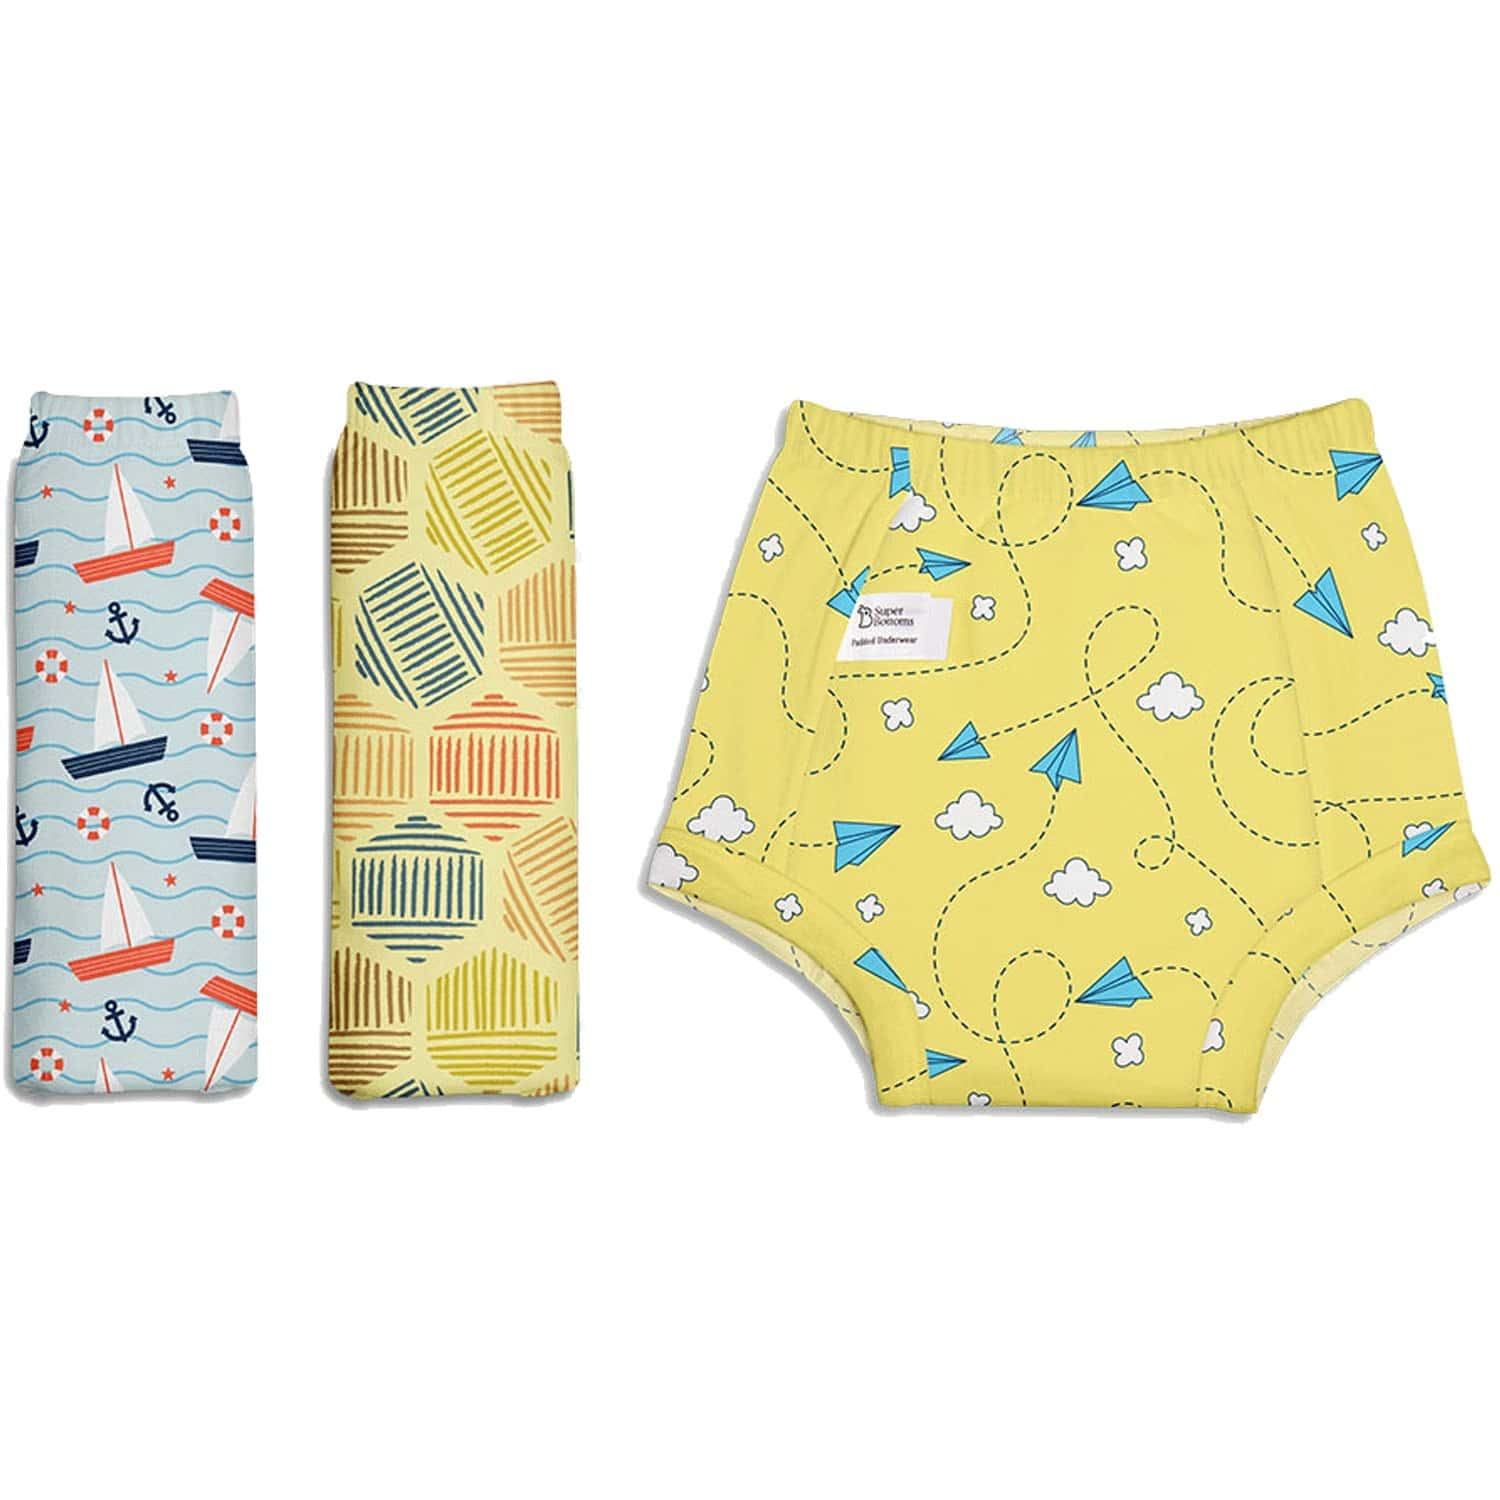 Superbottoms Padded Underwear - Pack Of 3 Potty Training Pants - 100% Cotton - Size 2, Explorer